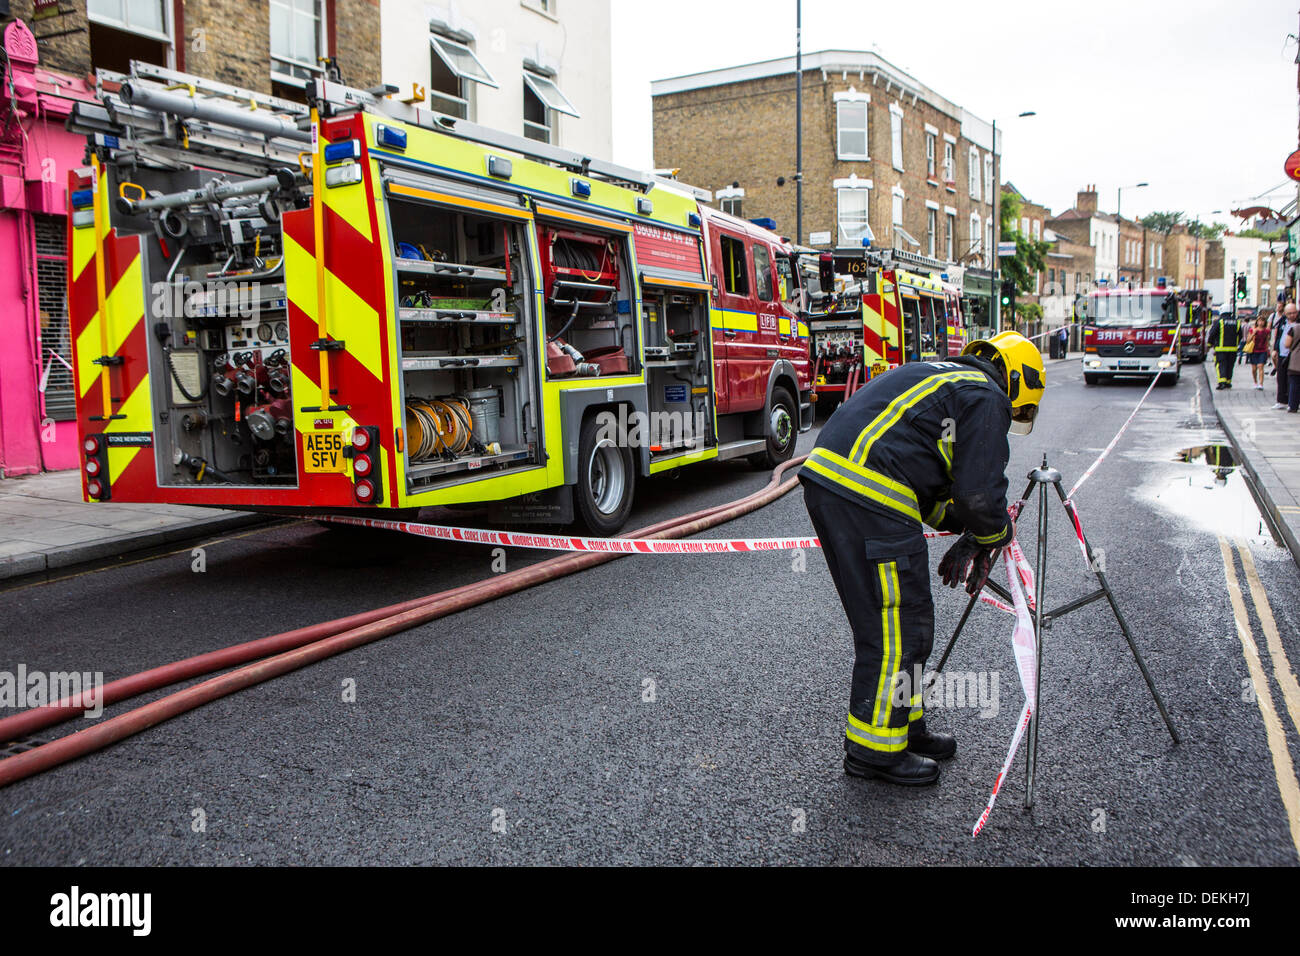 Emergency services Firefighters from the London Fire Brigade respond to an emergency in Stoke Newington, London. - Stock Image